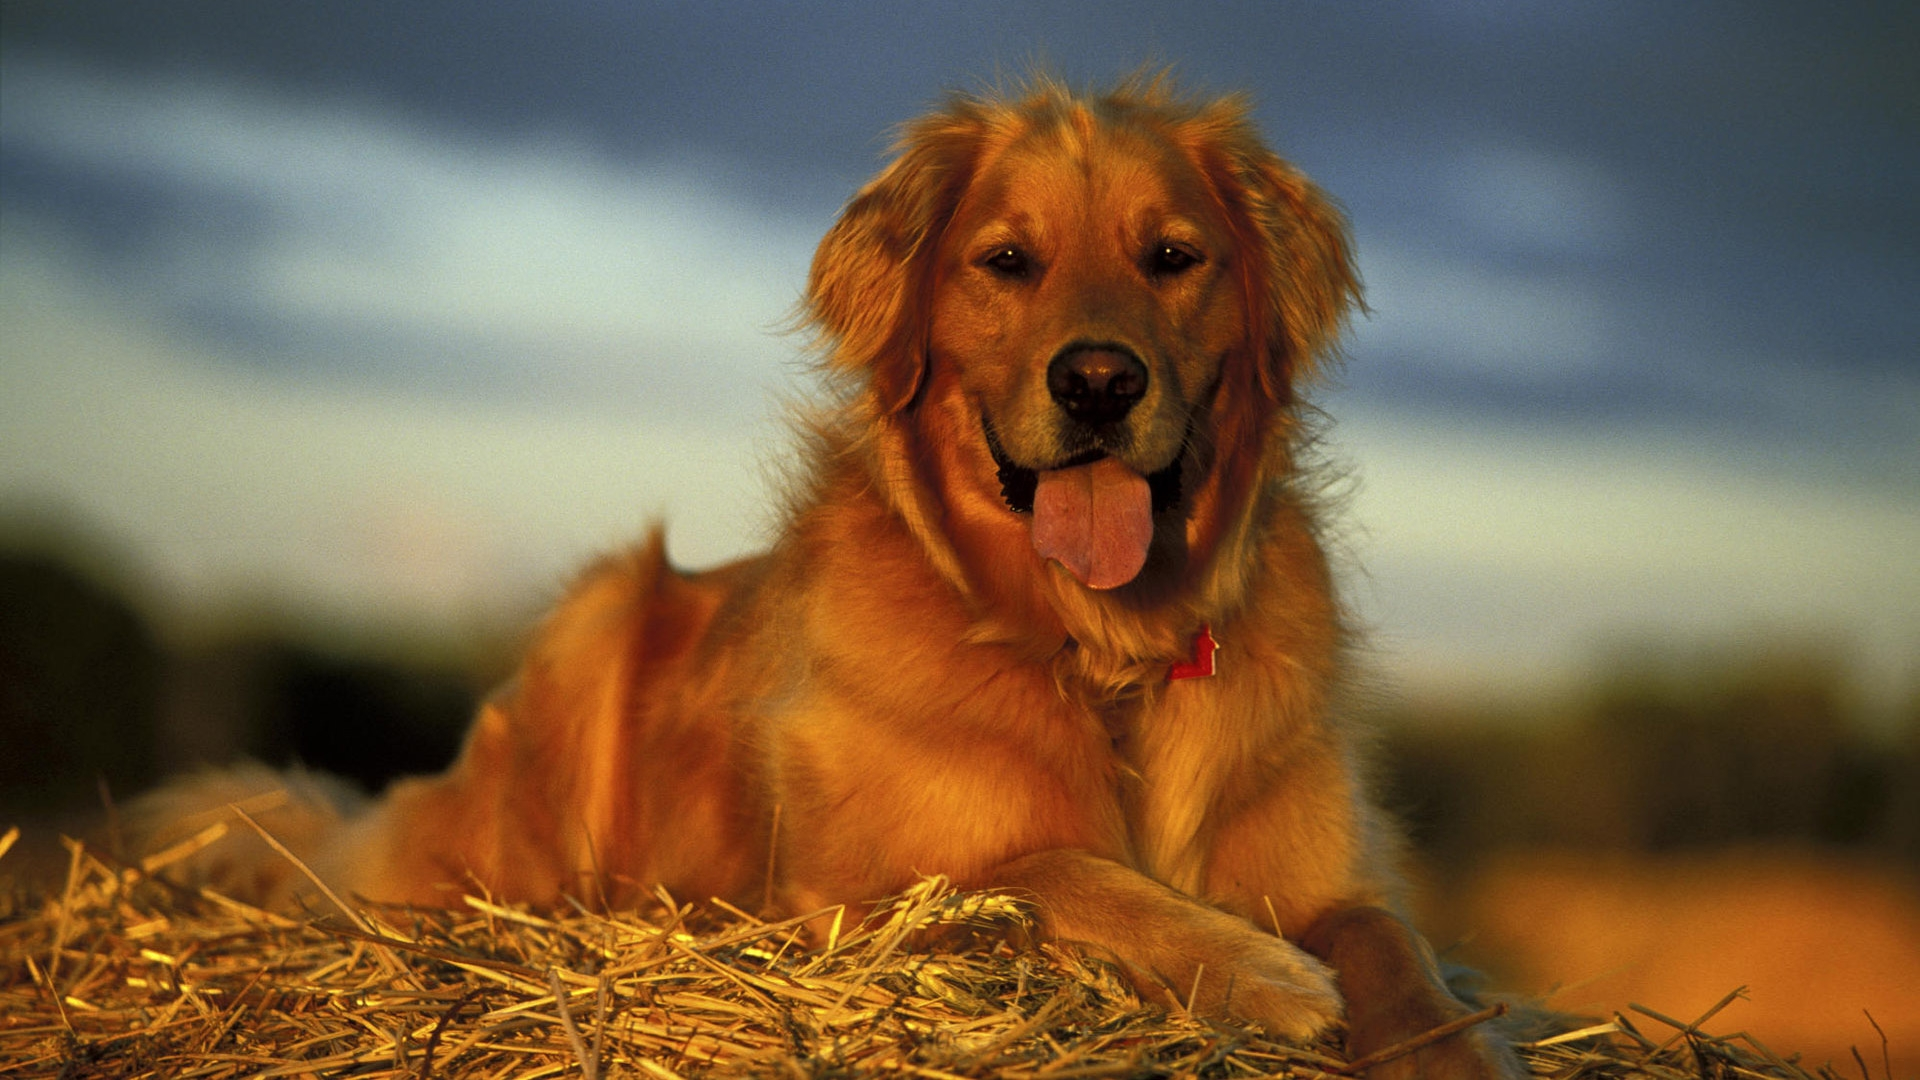 Golden Retriever Wallpaper 1920x1080 40648